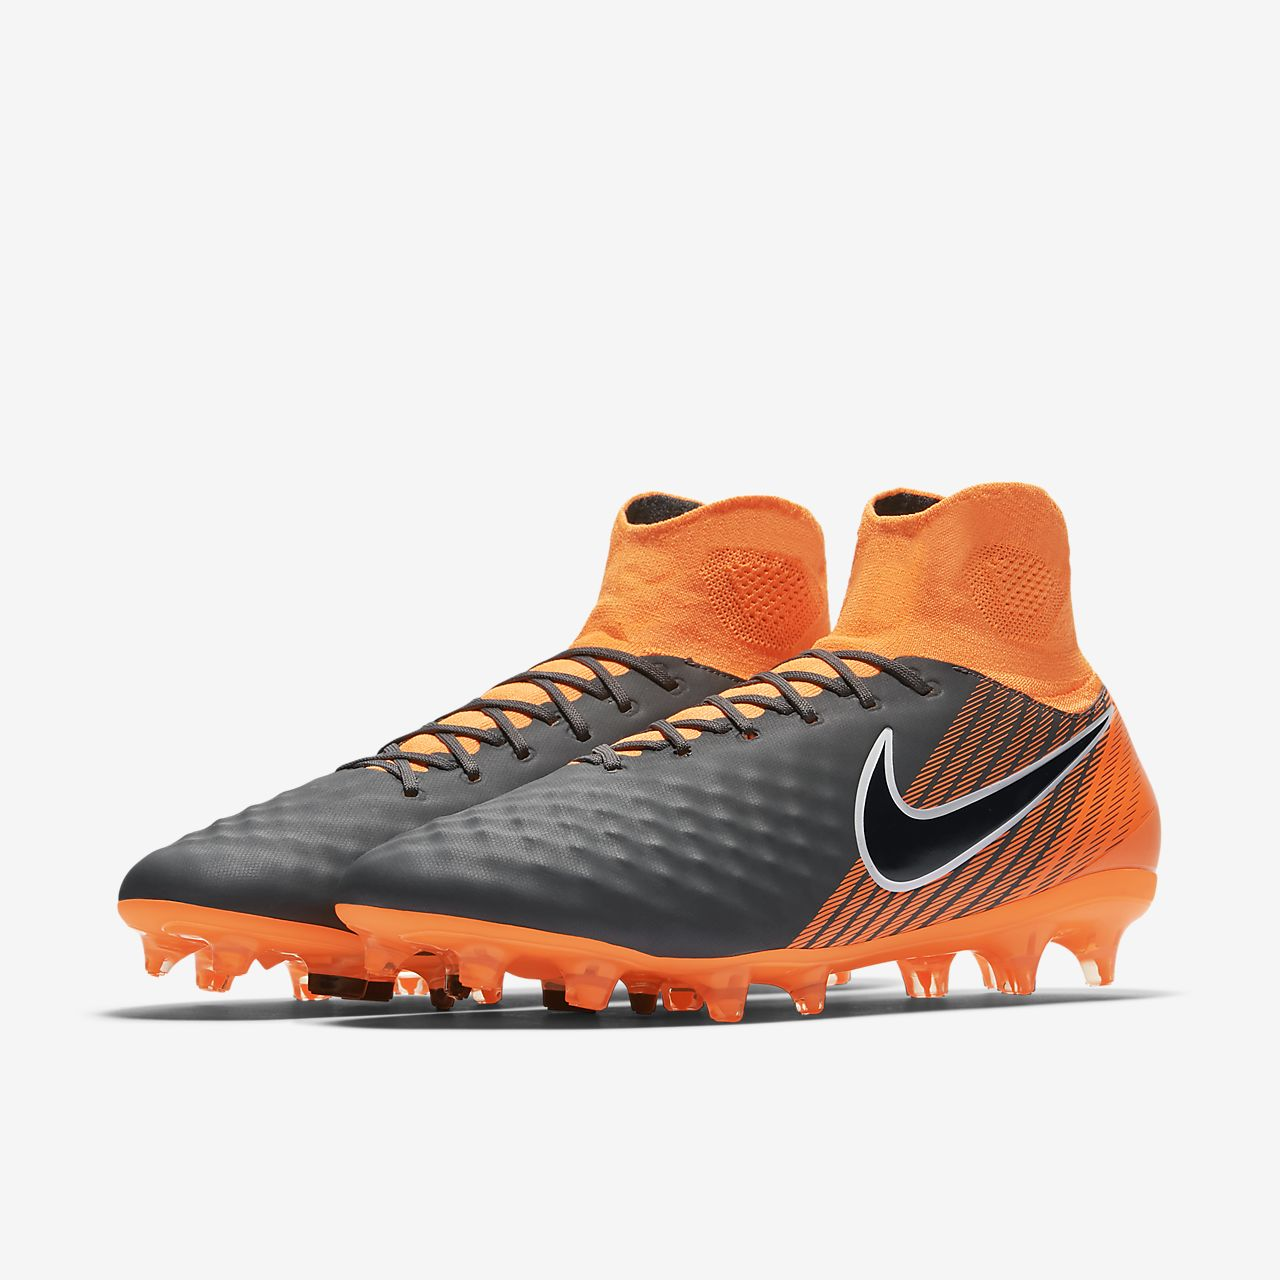 Scarpa da calcio per terreni duri Nike Magista Obra II Elite Dynamic Fit FG - Grigio nike marroni